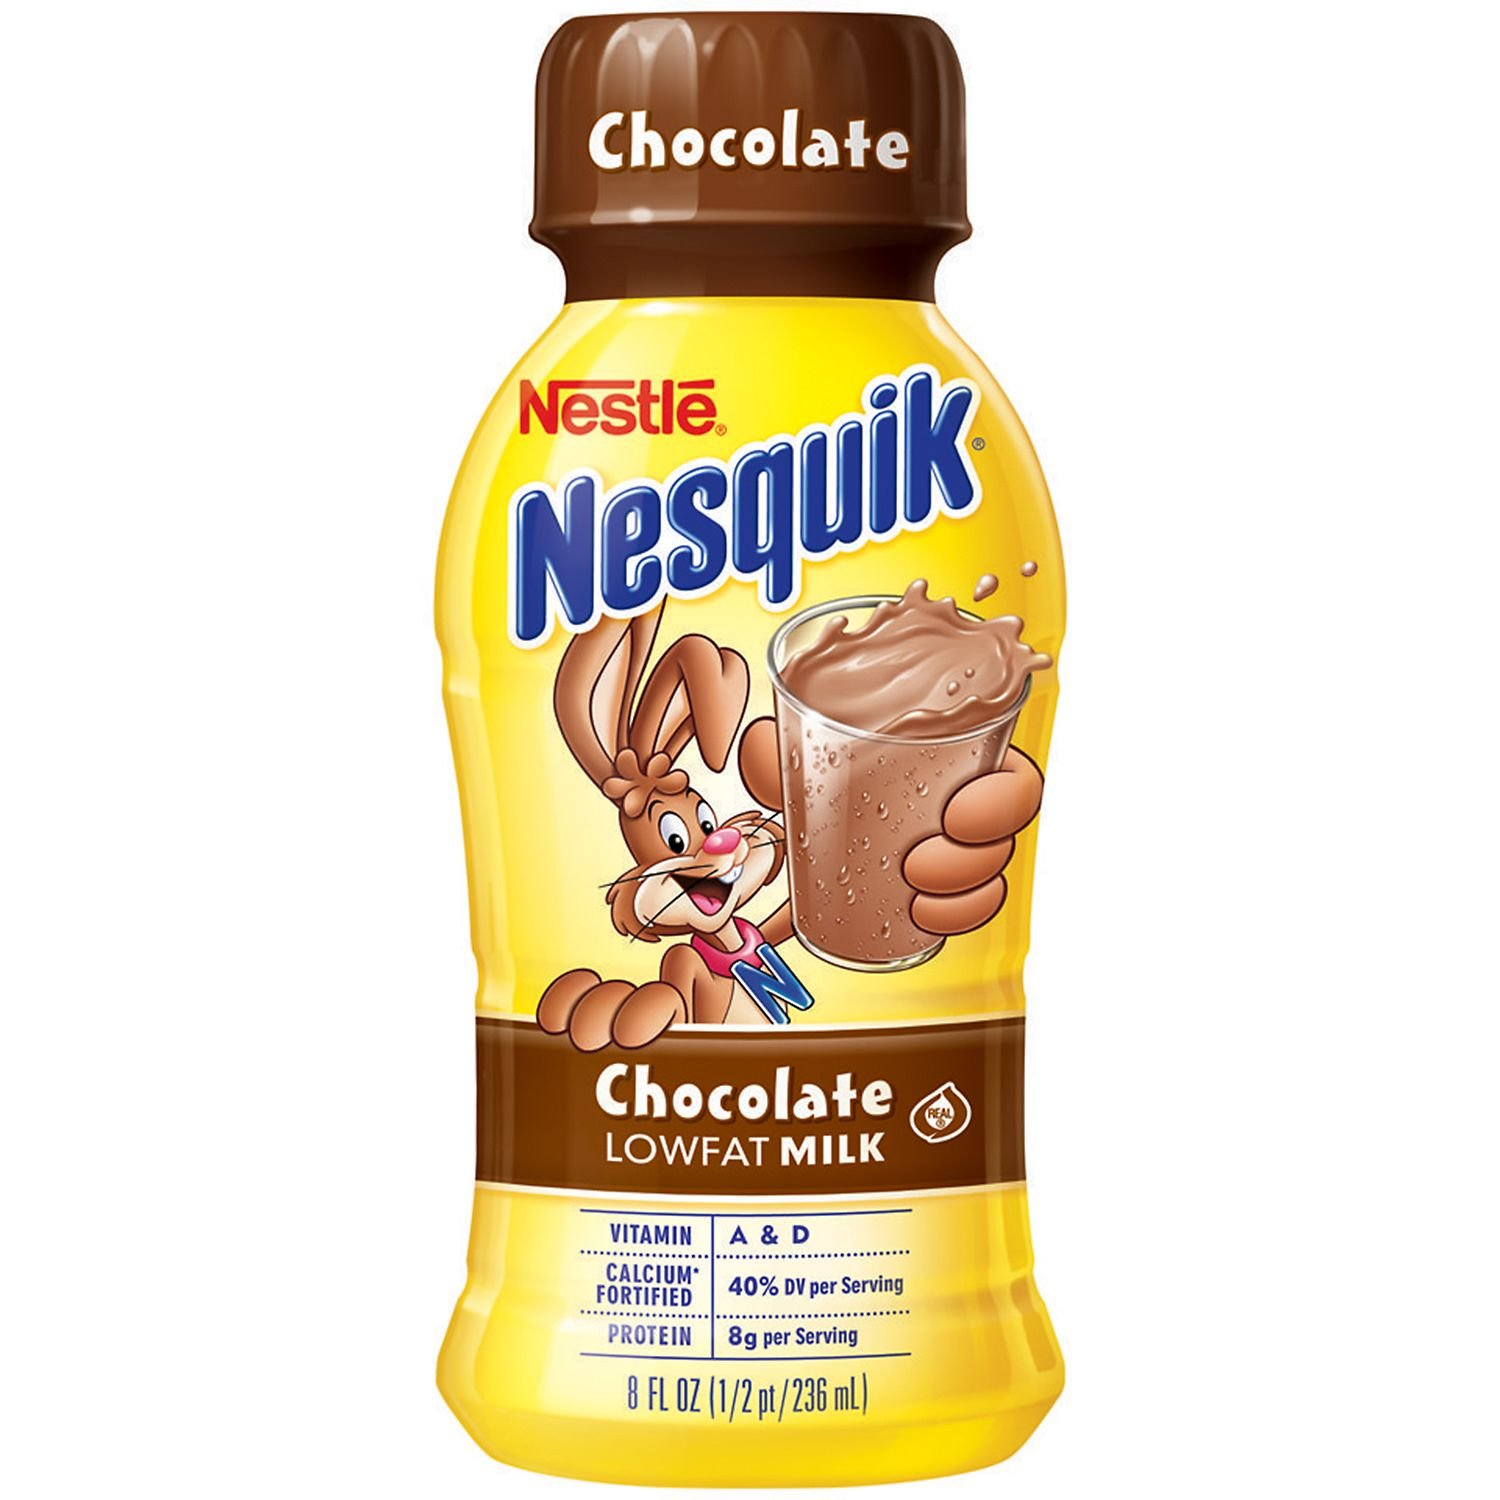 Nestle Nesquik Chocolate Lowfat Milk (8 oz. bottles, 15 pk.) (pack of 6)